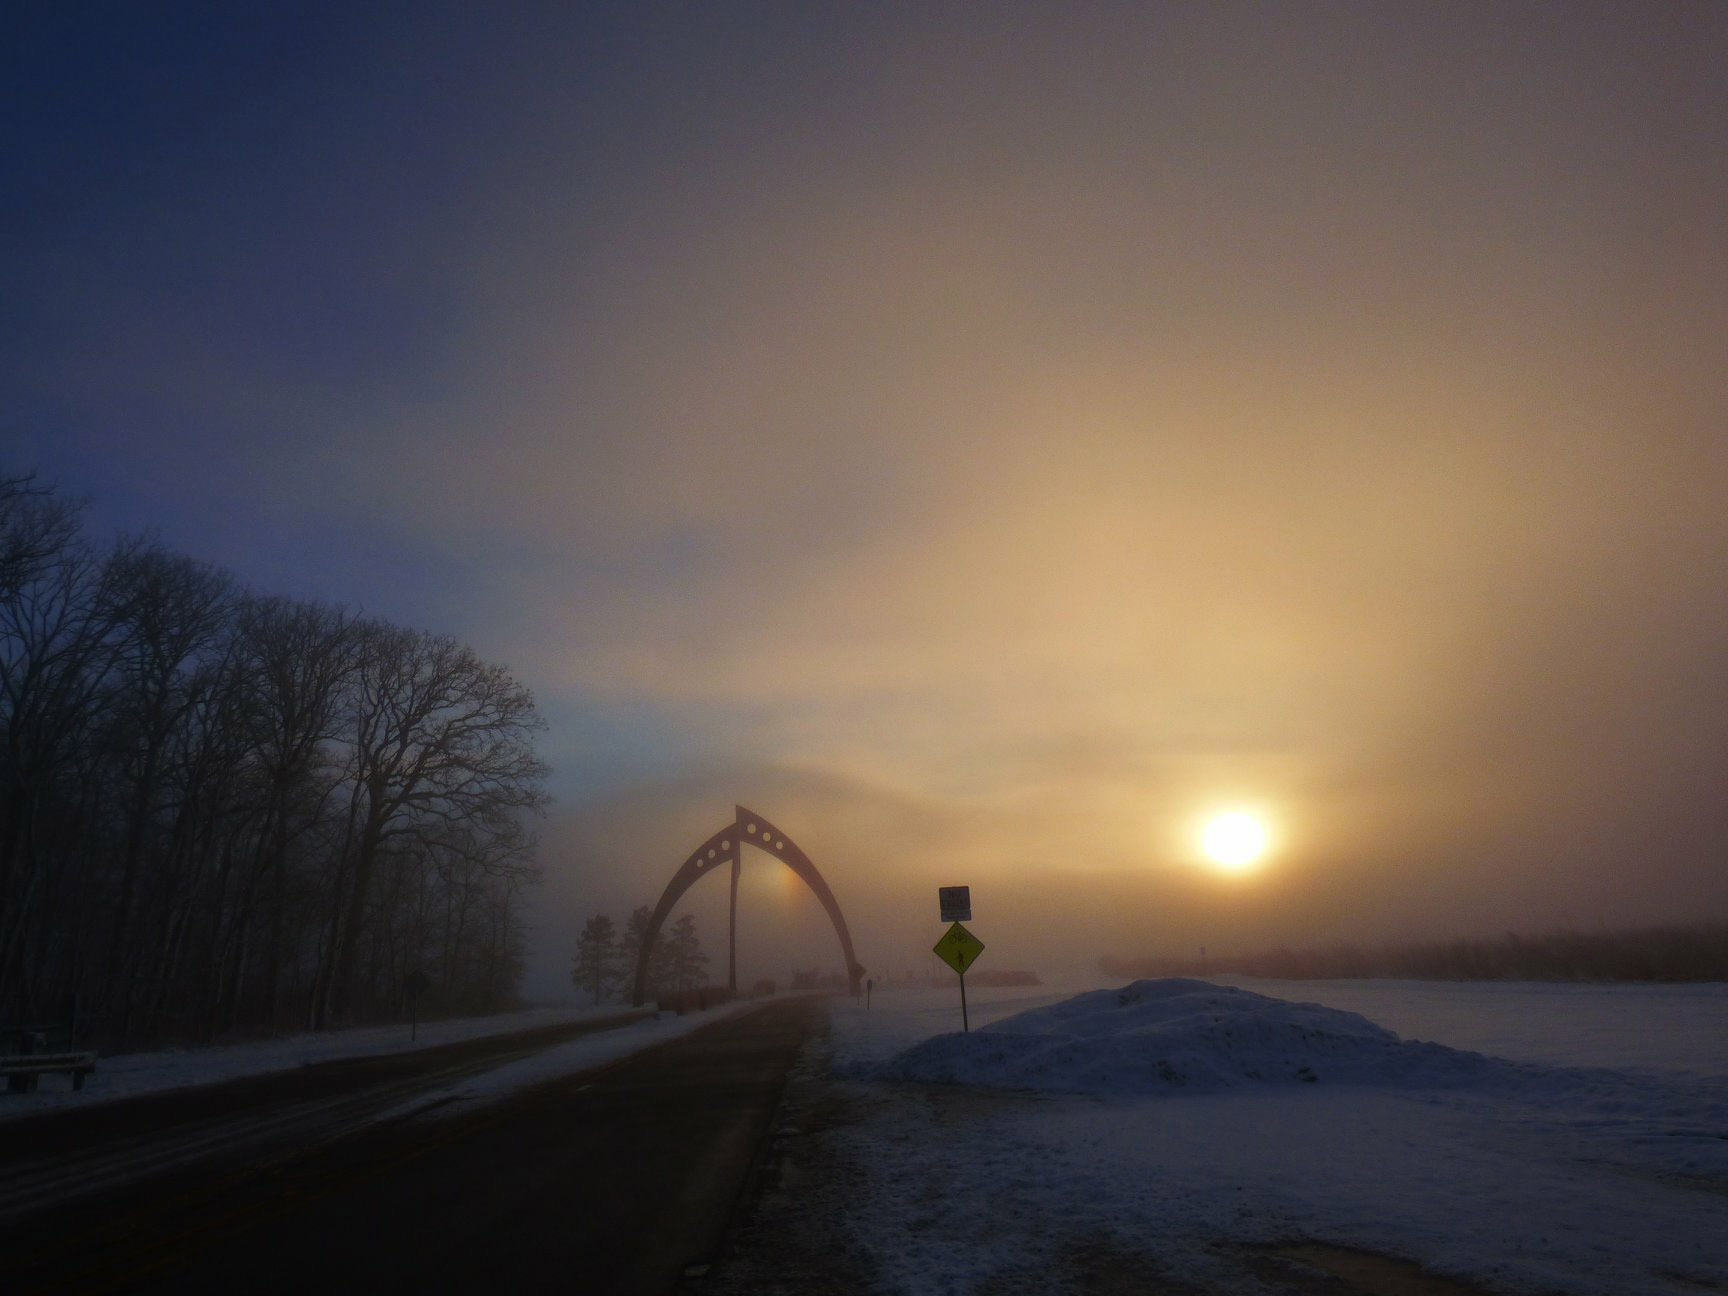 (1/3) The sun begins to break through the clouds on this beautiful foggy morning on Feb. 18. Photo: Amy Scroggins, nature, sky, fog, sun, rainbow, sculpture, Broken Symmetry, fog, landscape